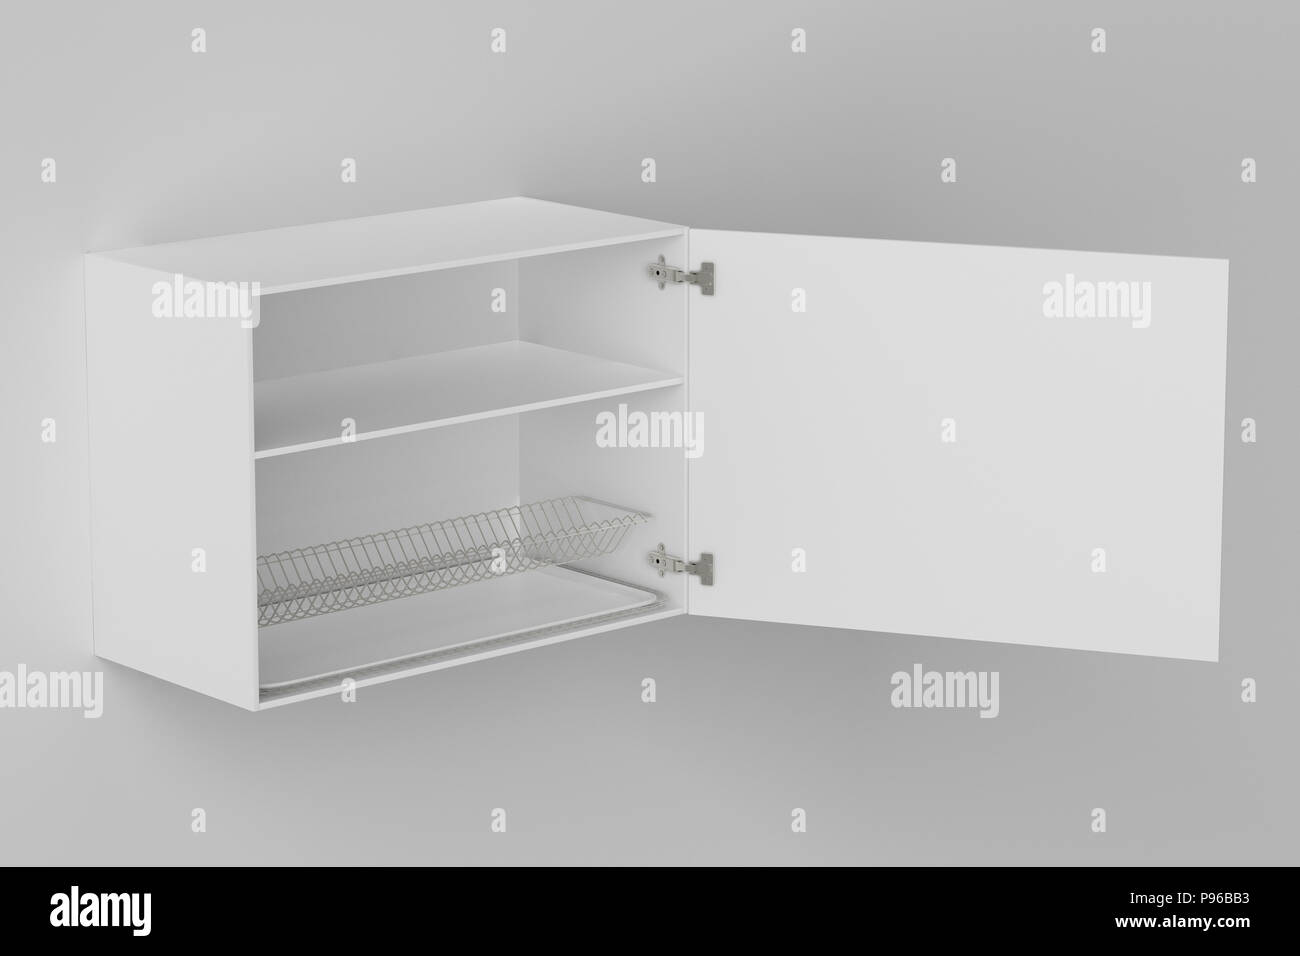 White Kitchen Wall Cabinet With Dish Drainer Isolated On White Wall Include Clipping Path 3d Render Stock Photo Alamy